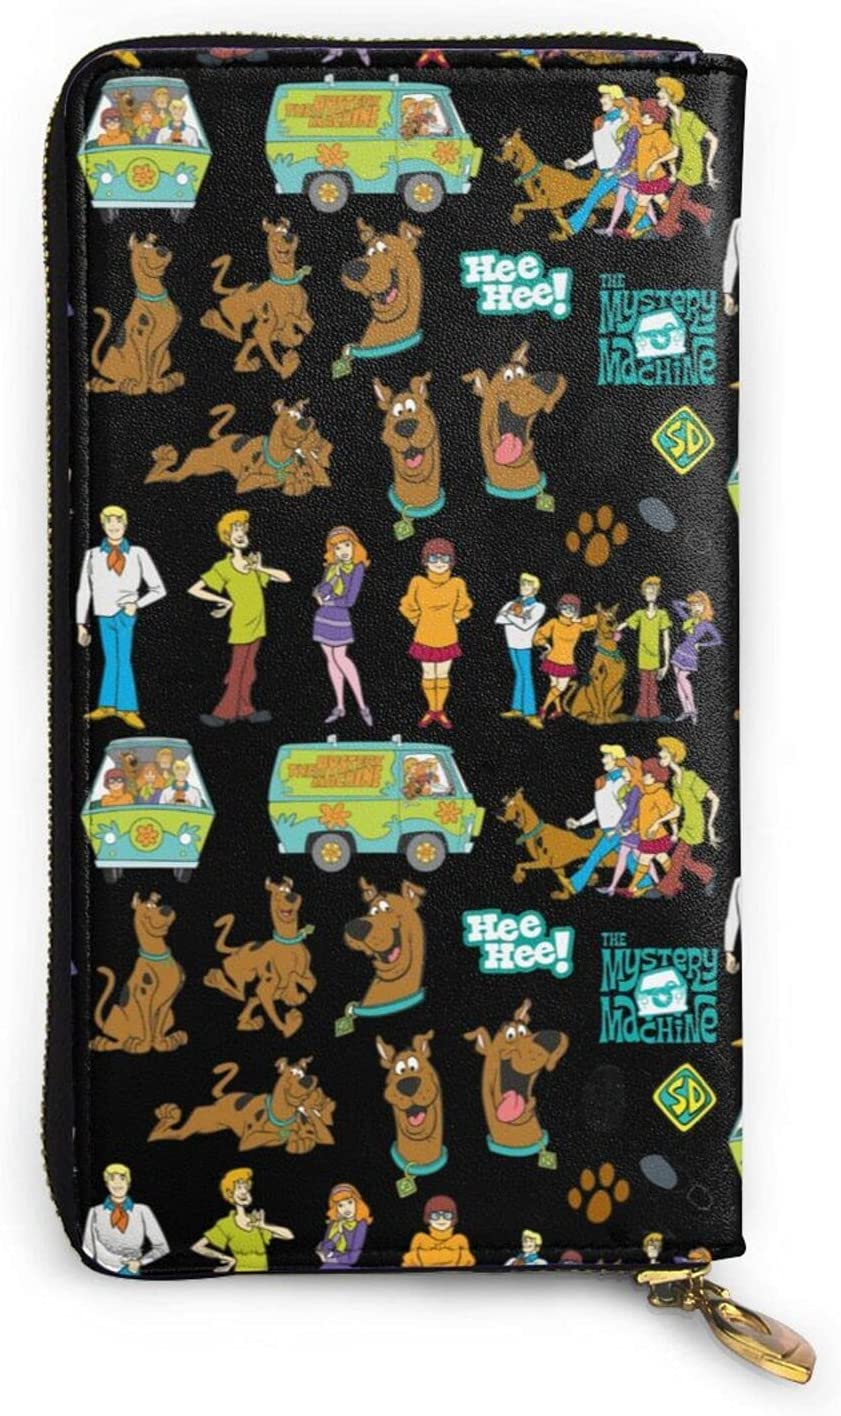 WONGTAL Scooby?doo Mens Personalized Leather Clut Long Beach Mall Wallet All items free shipping Genuine